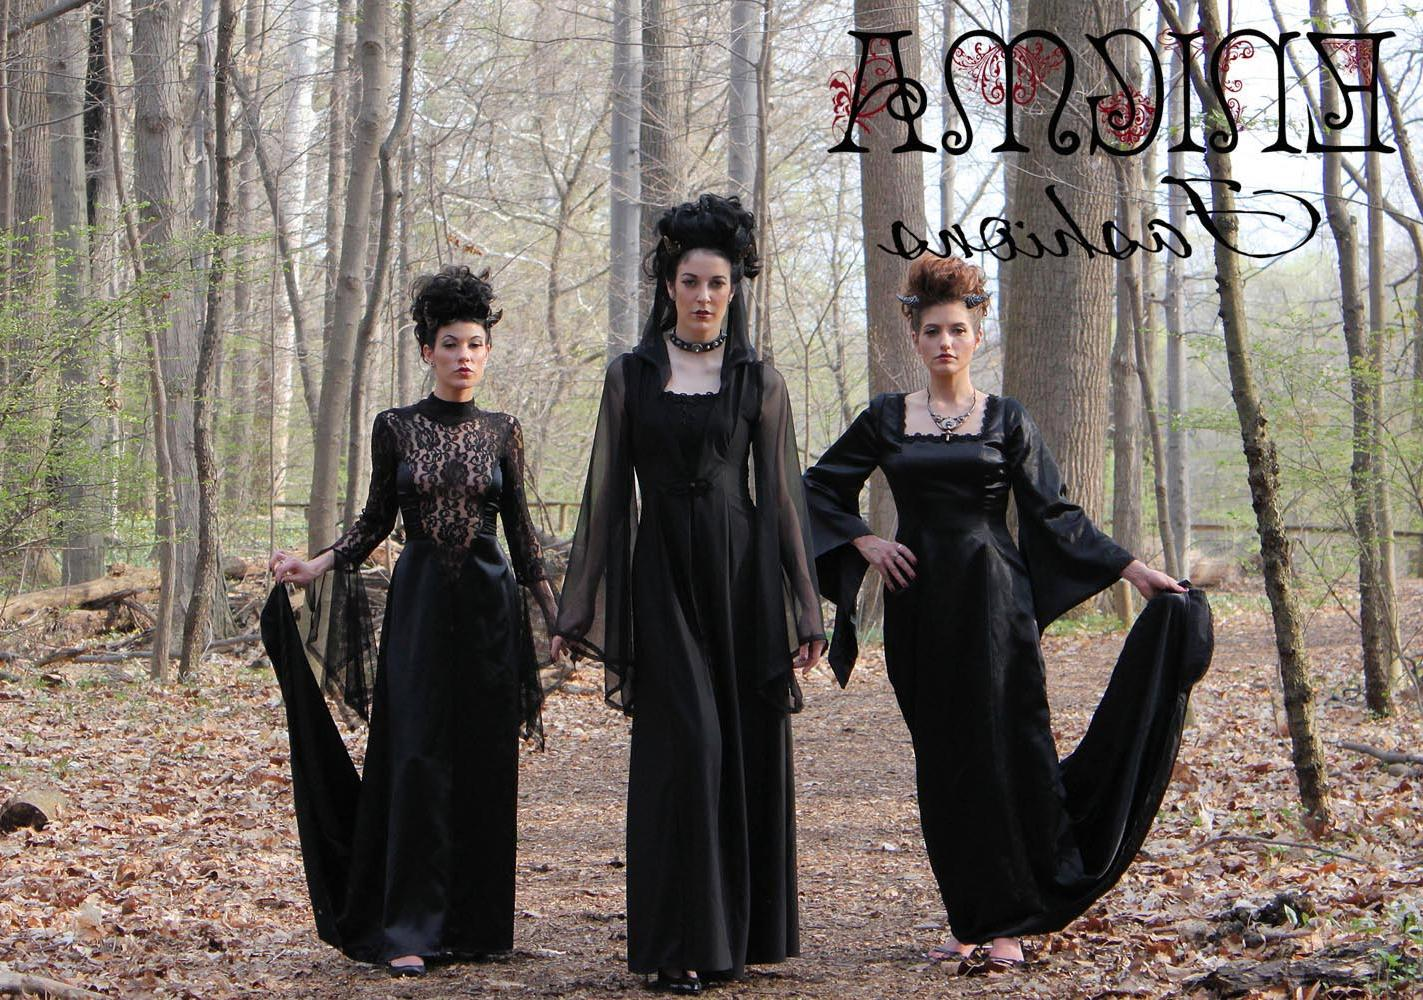 Elegant Gothic Pagan gown in size M. Instock an ready to ship